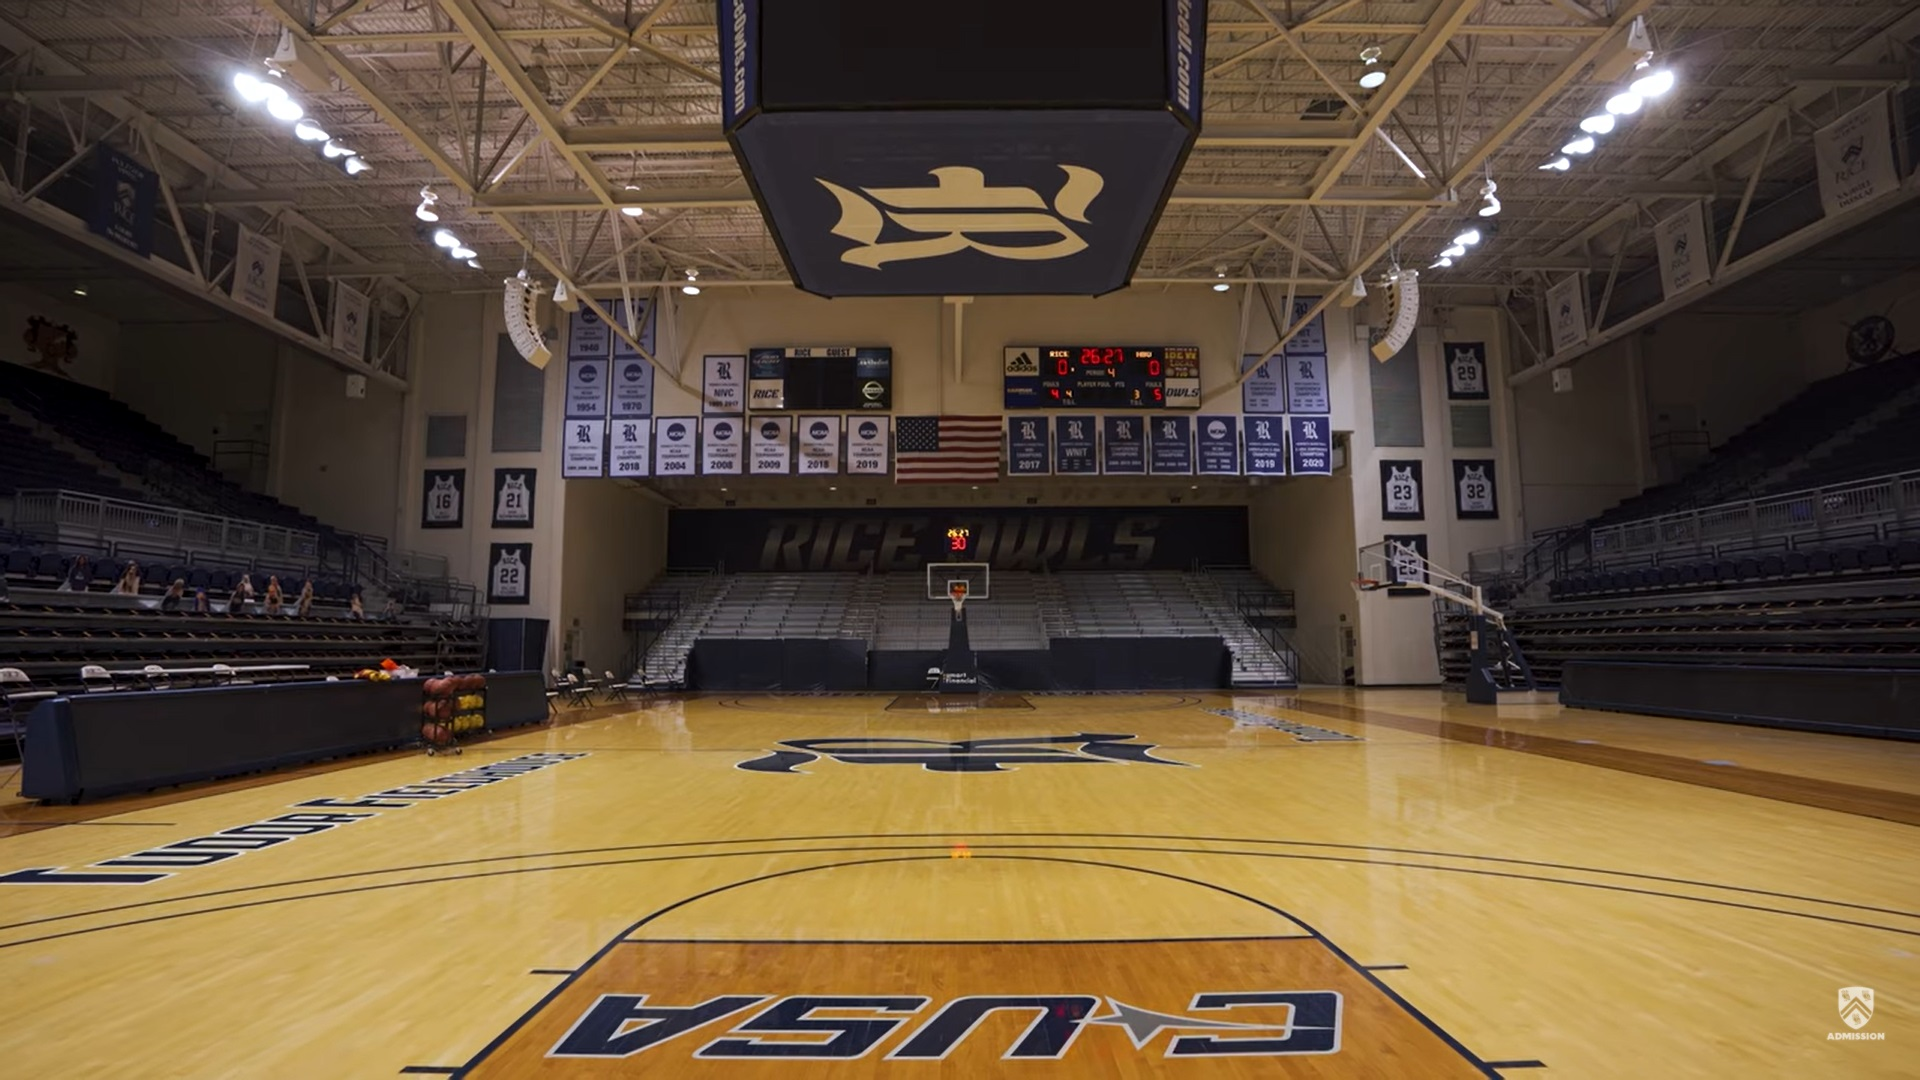 Picture of the inside of the gym inside of Tudor Fieldhouse.